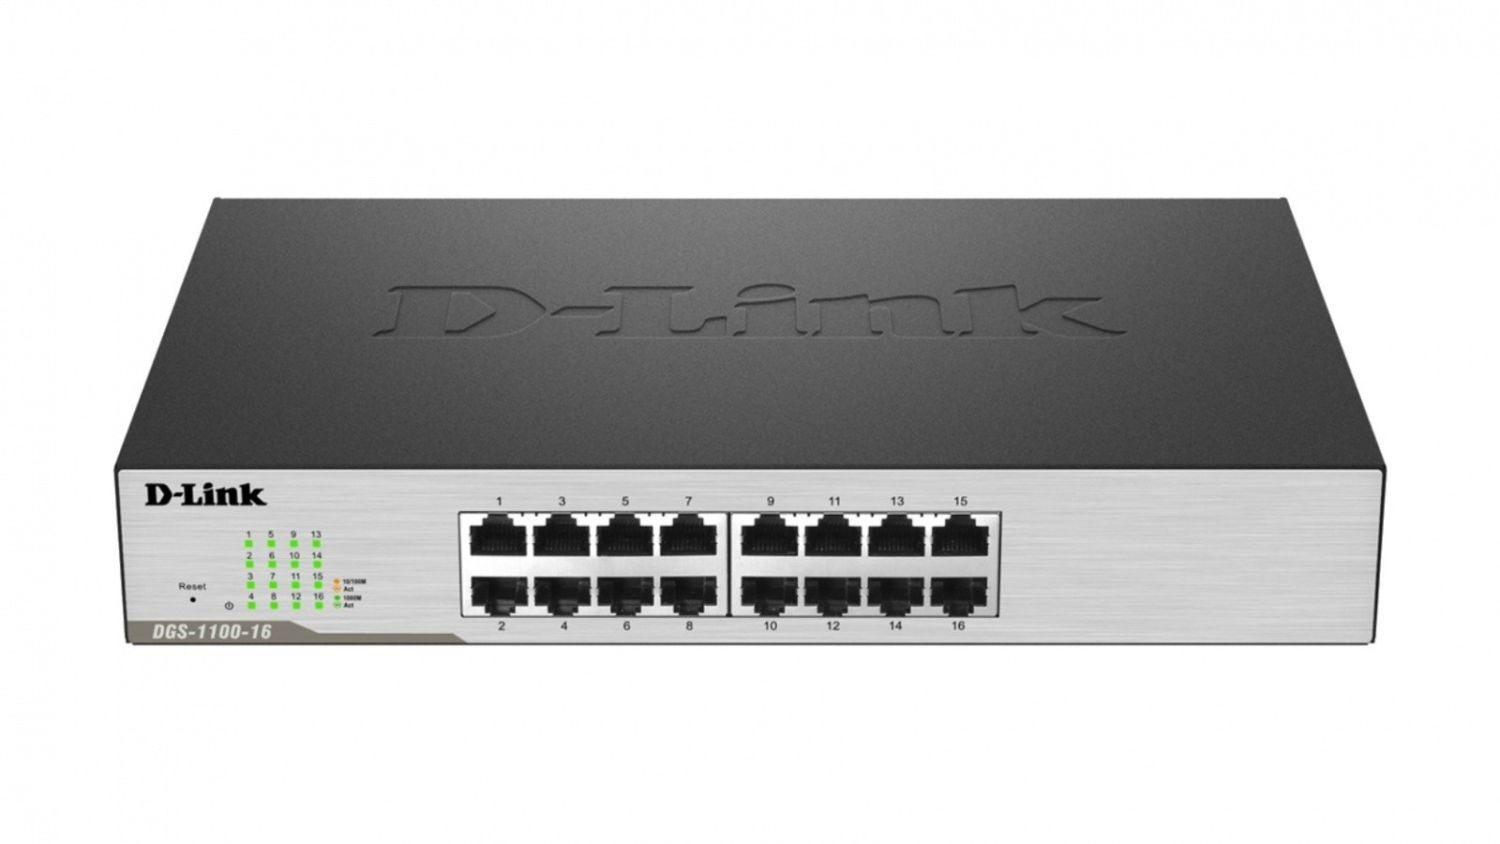 D-Link 16-port 10/100/1000 EasySmart Switch